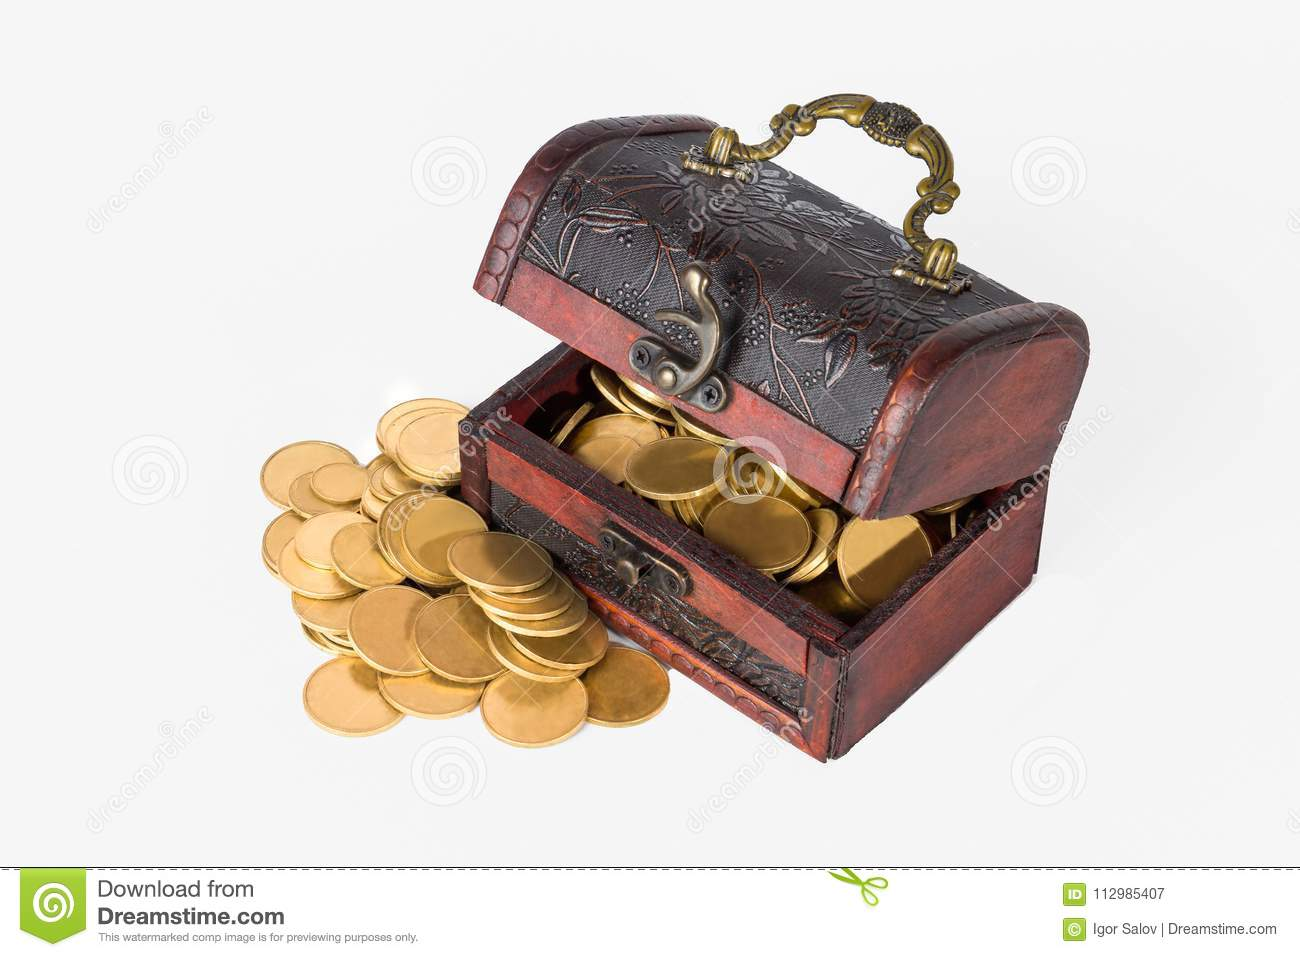 Pirate chest with scattered golden coins on a white background isolate